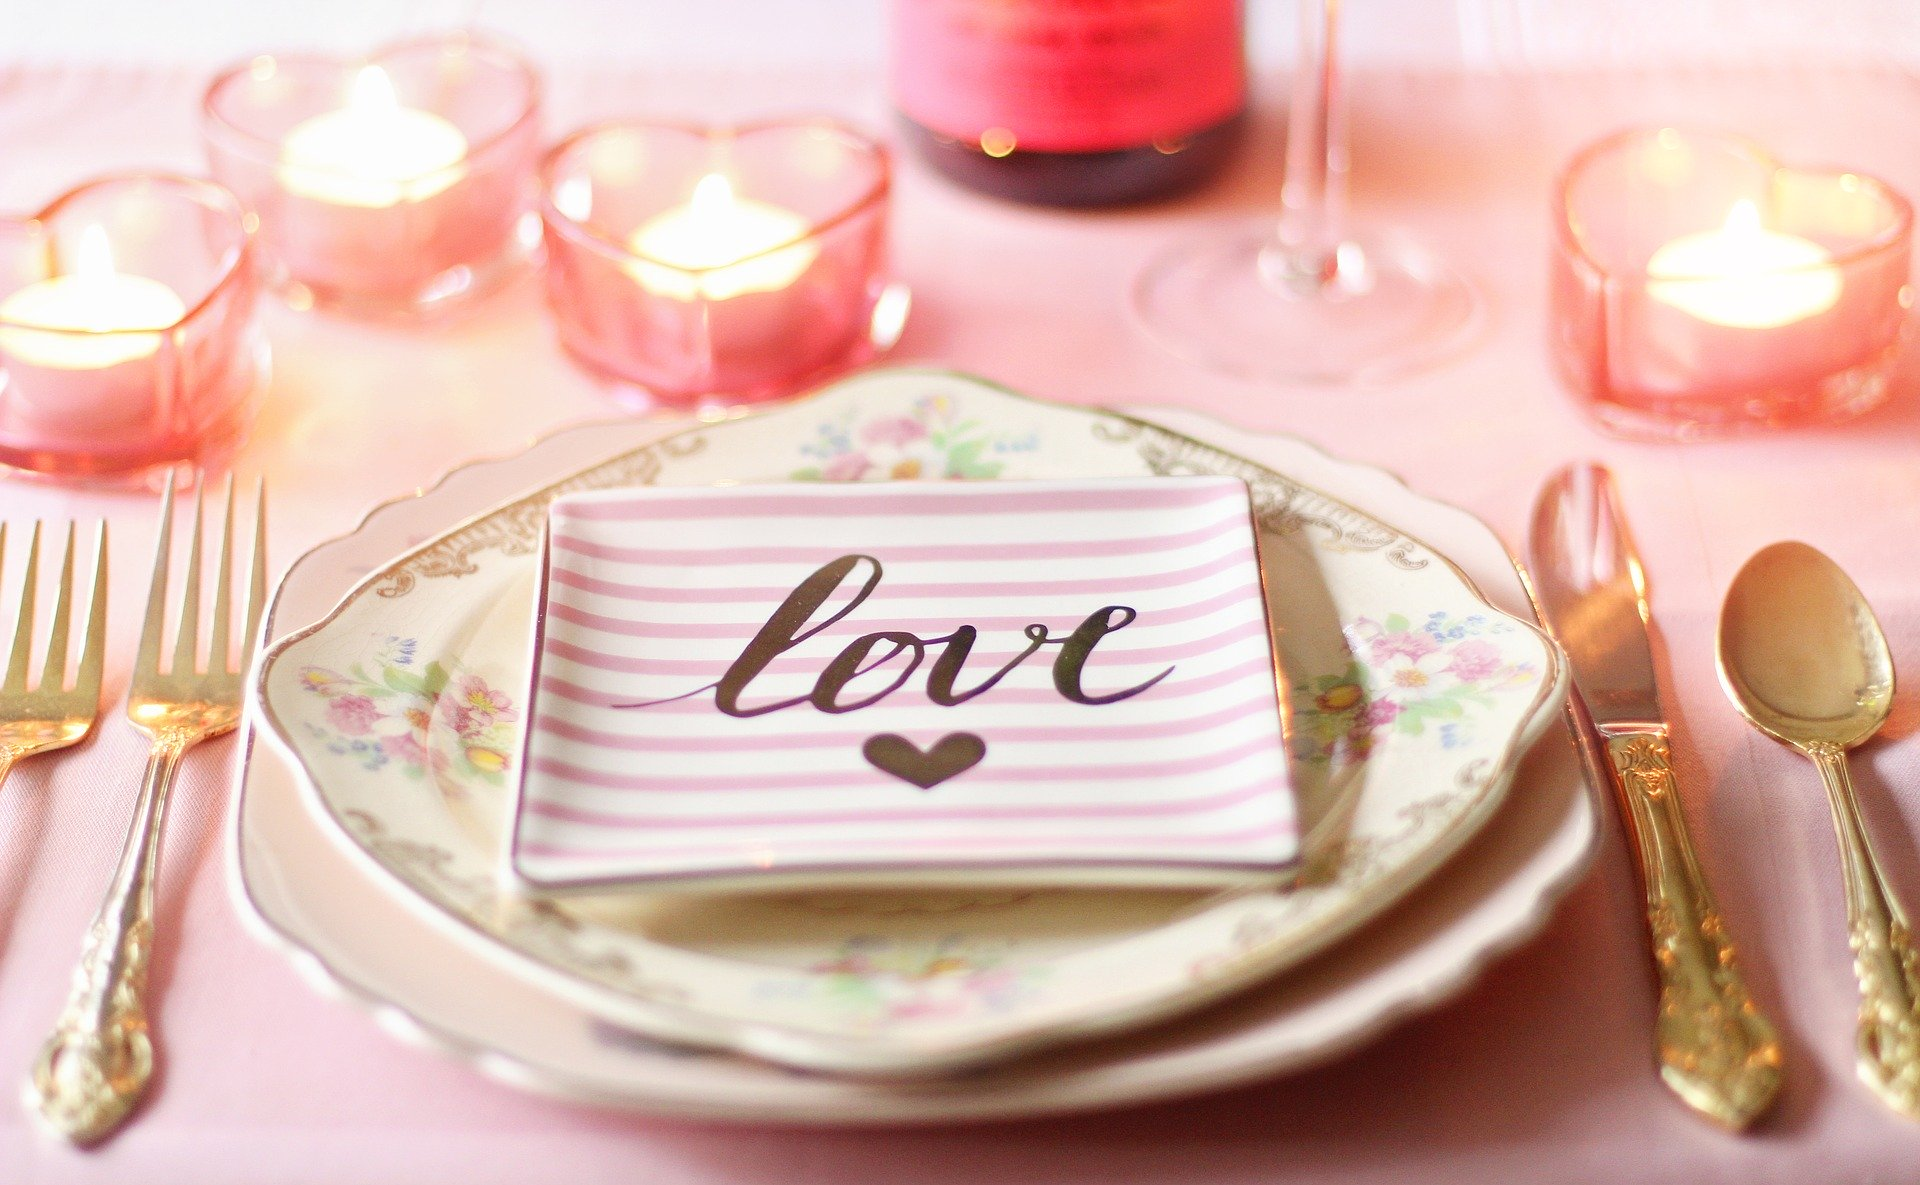 """A table setting for Valentine's Day with gold crockery and floral plates. There is a pink and white plate with """"Love"""" written on it with a heart."""